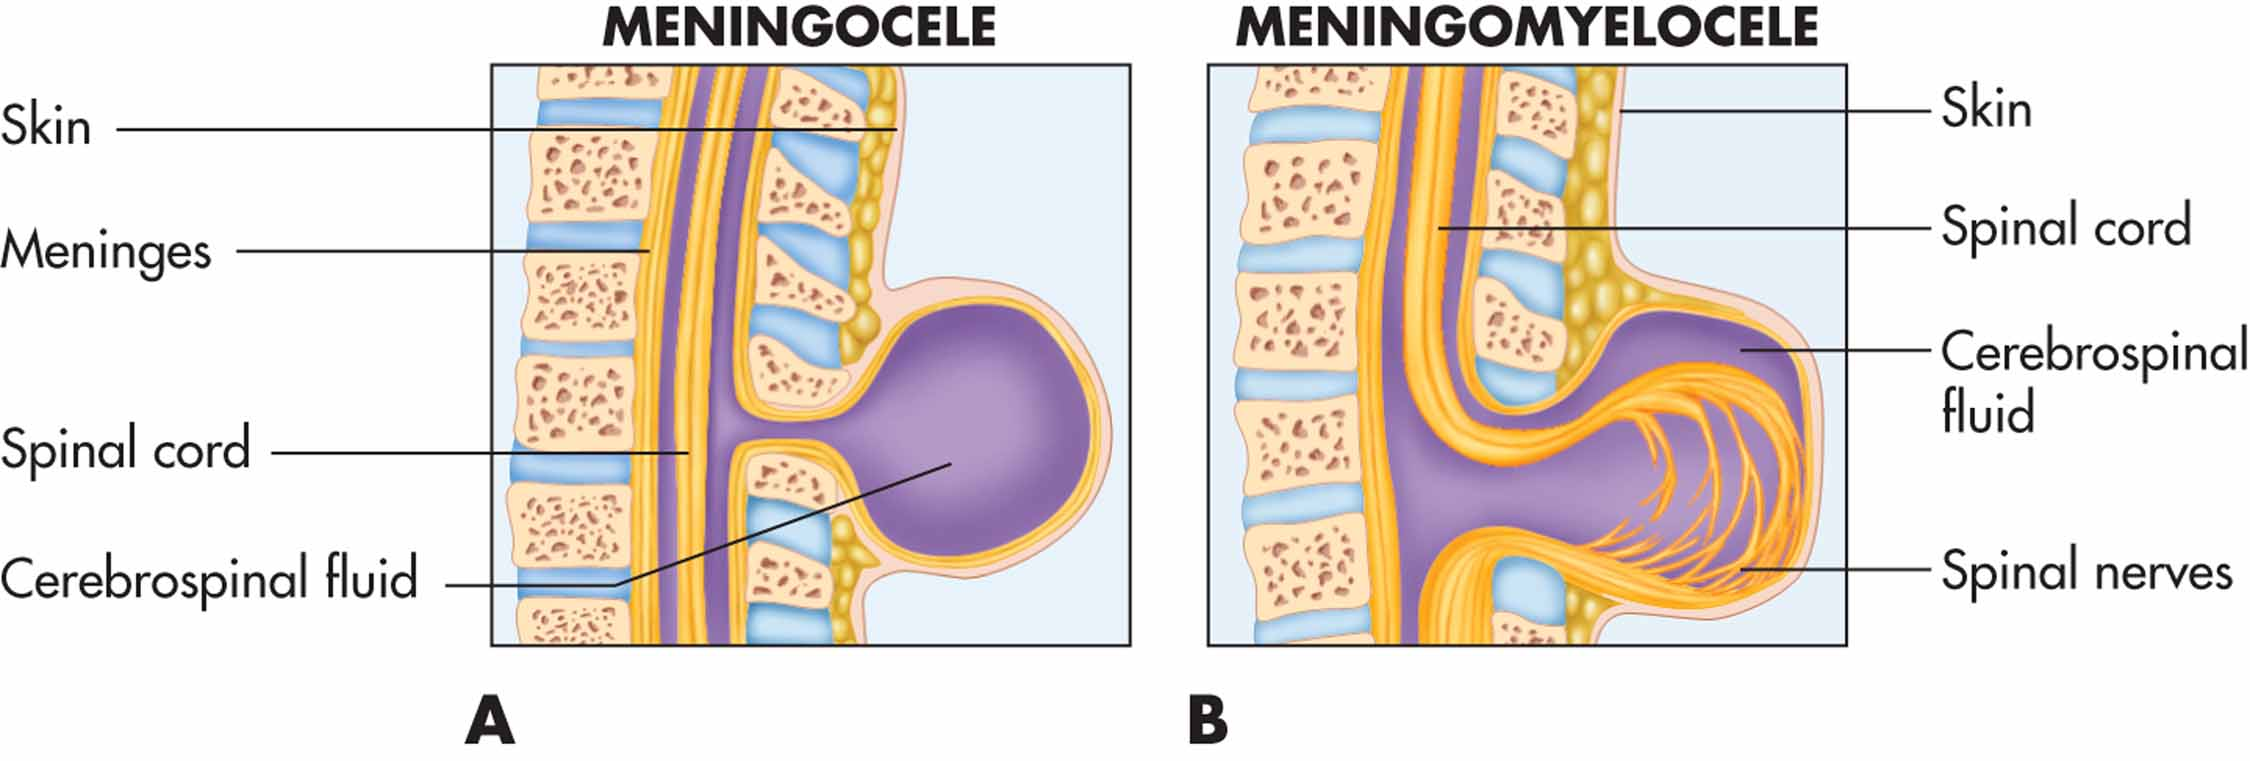 congenital abnormalities of the spine. a. meningocele. b, Skeleton